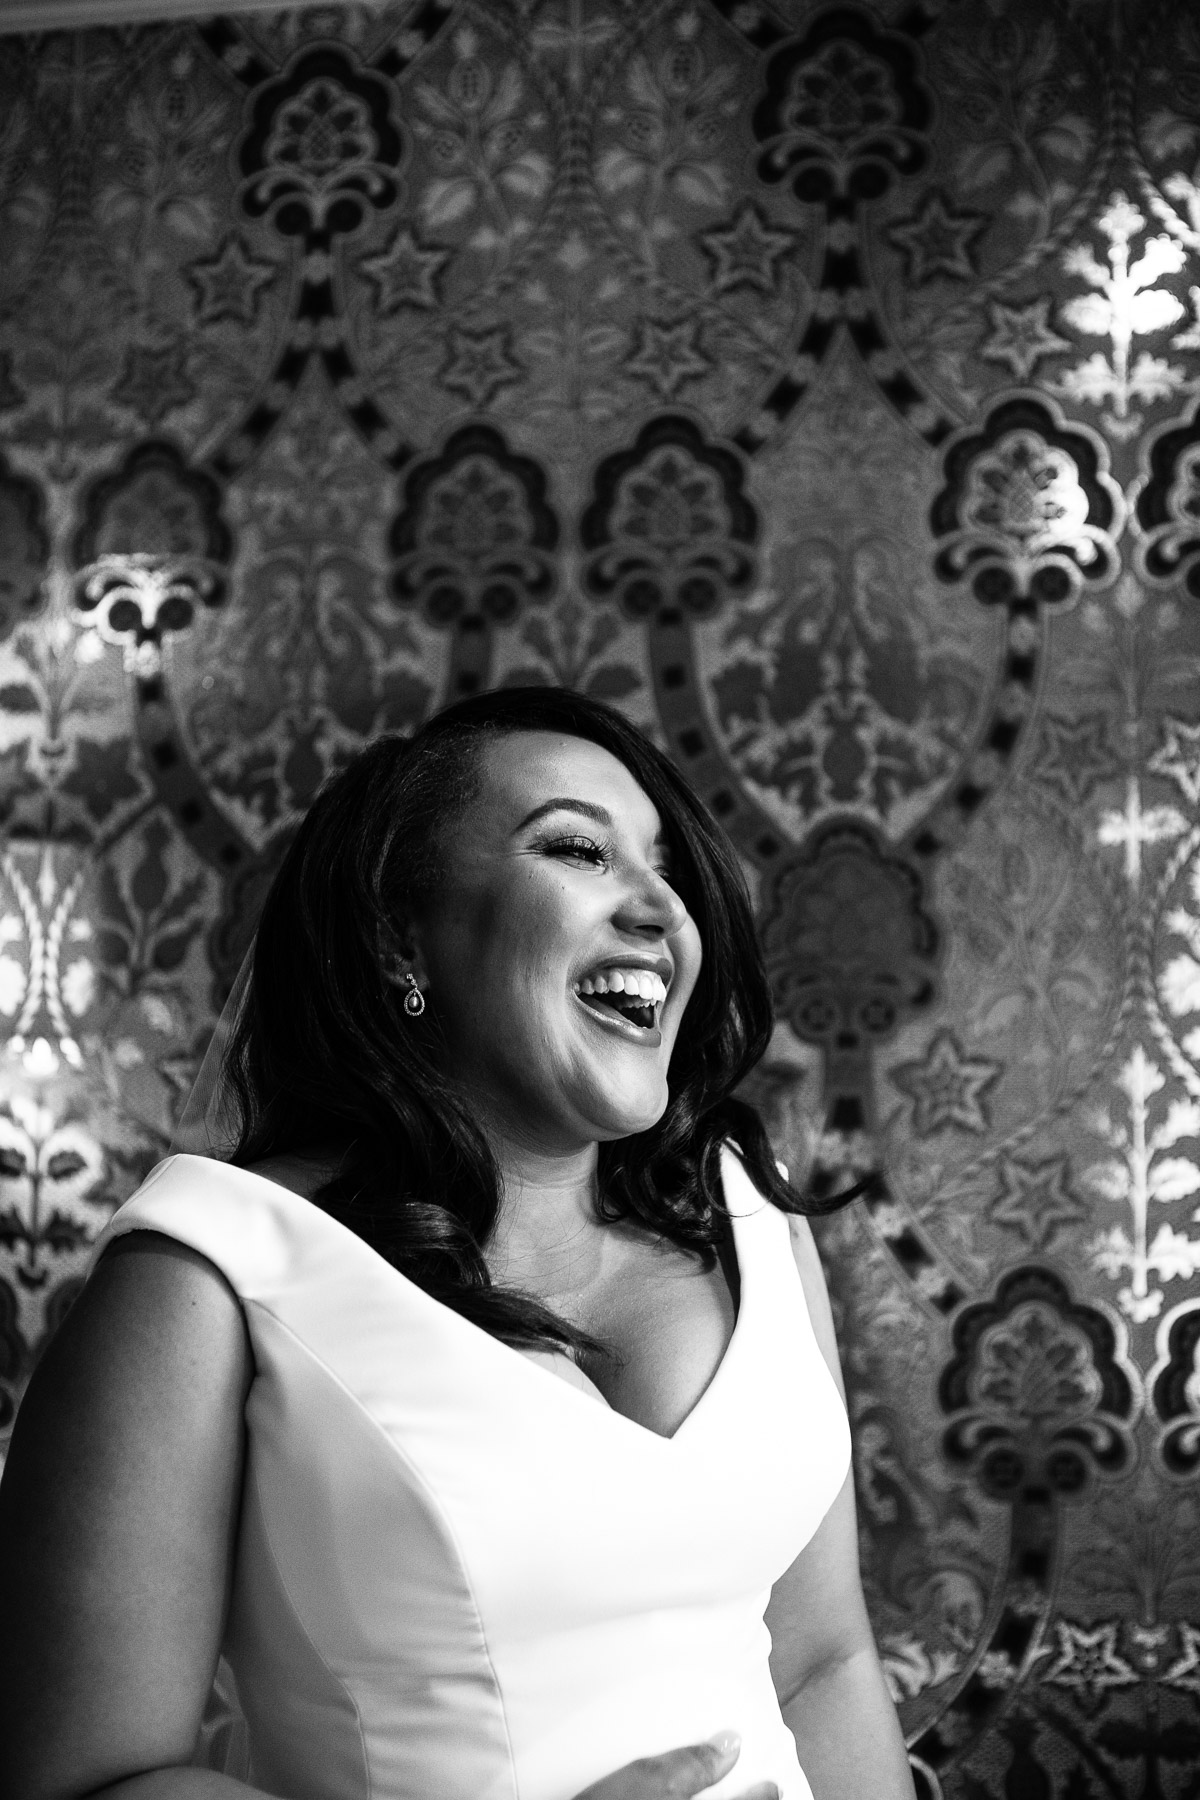 A black and white shot of a laughing bride stood in front of patterned wallpaper